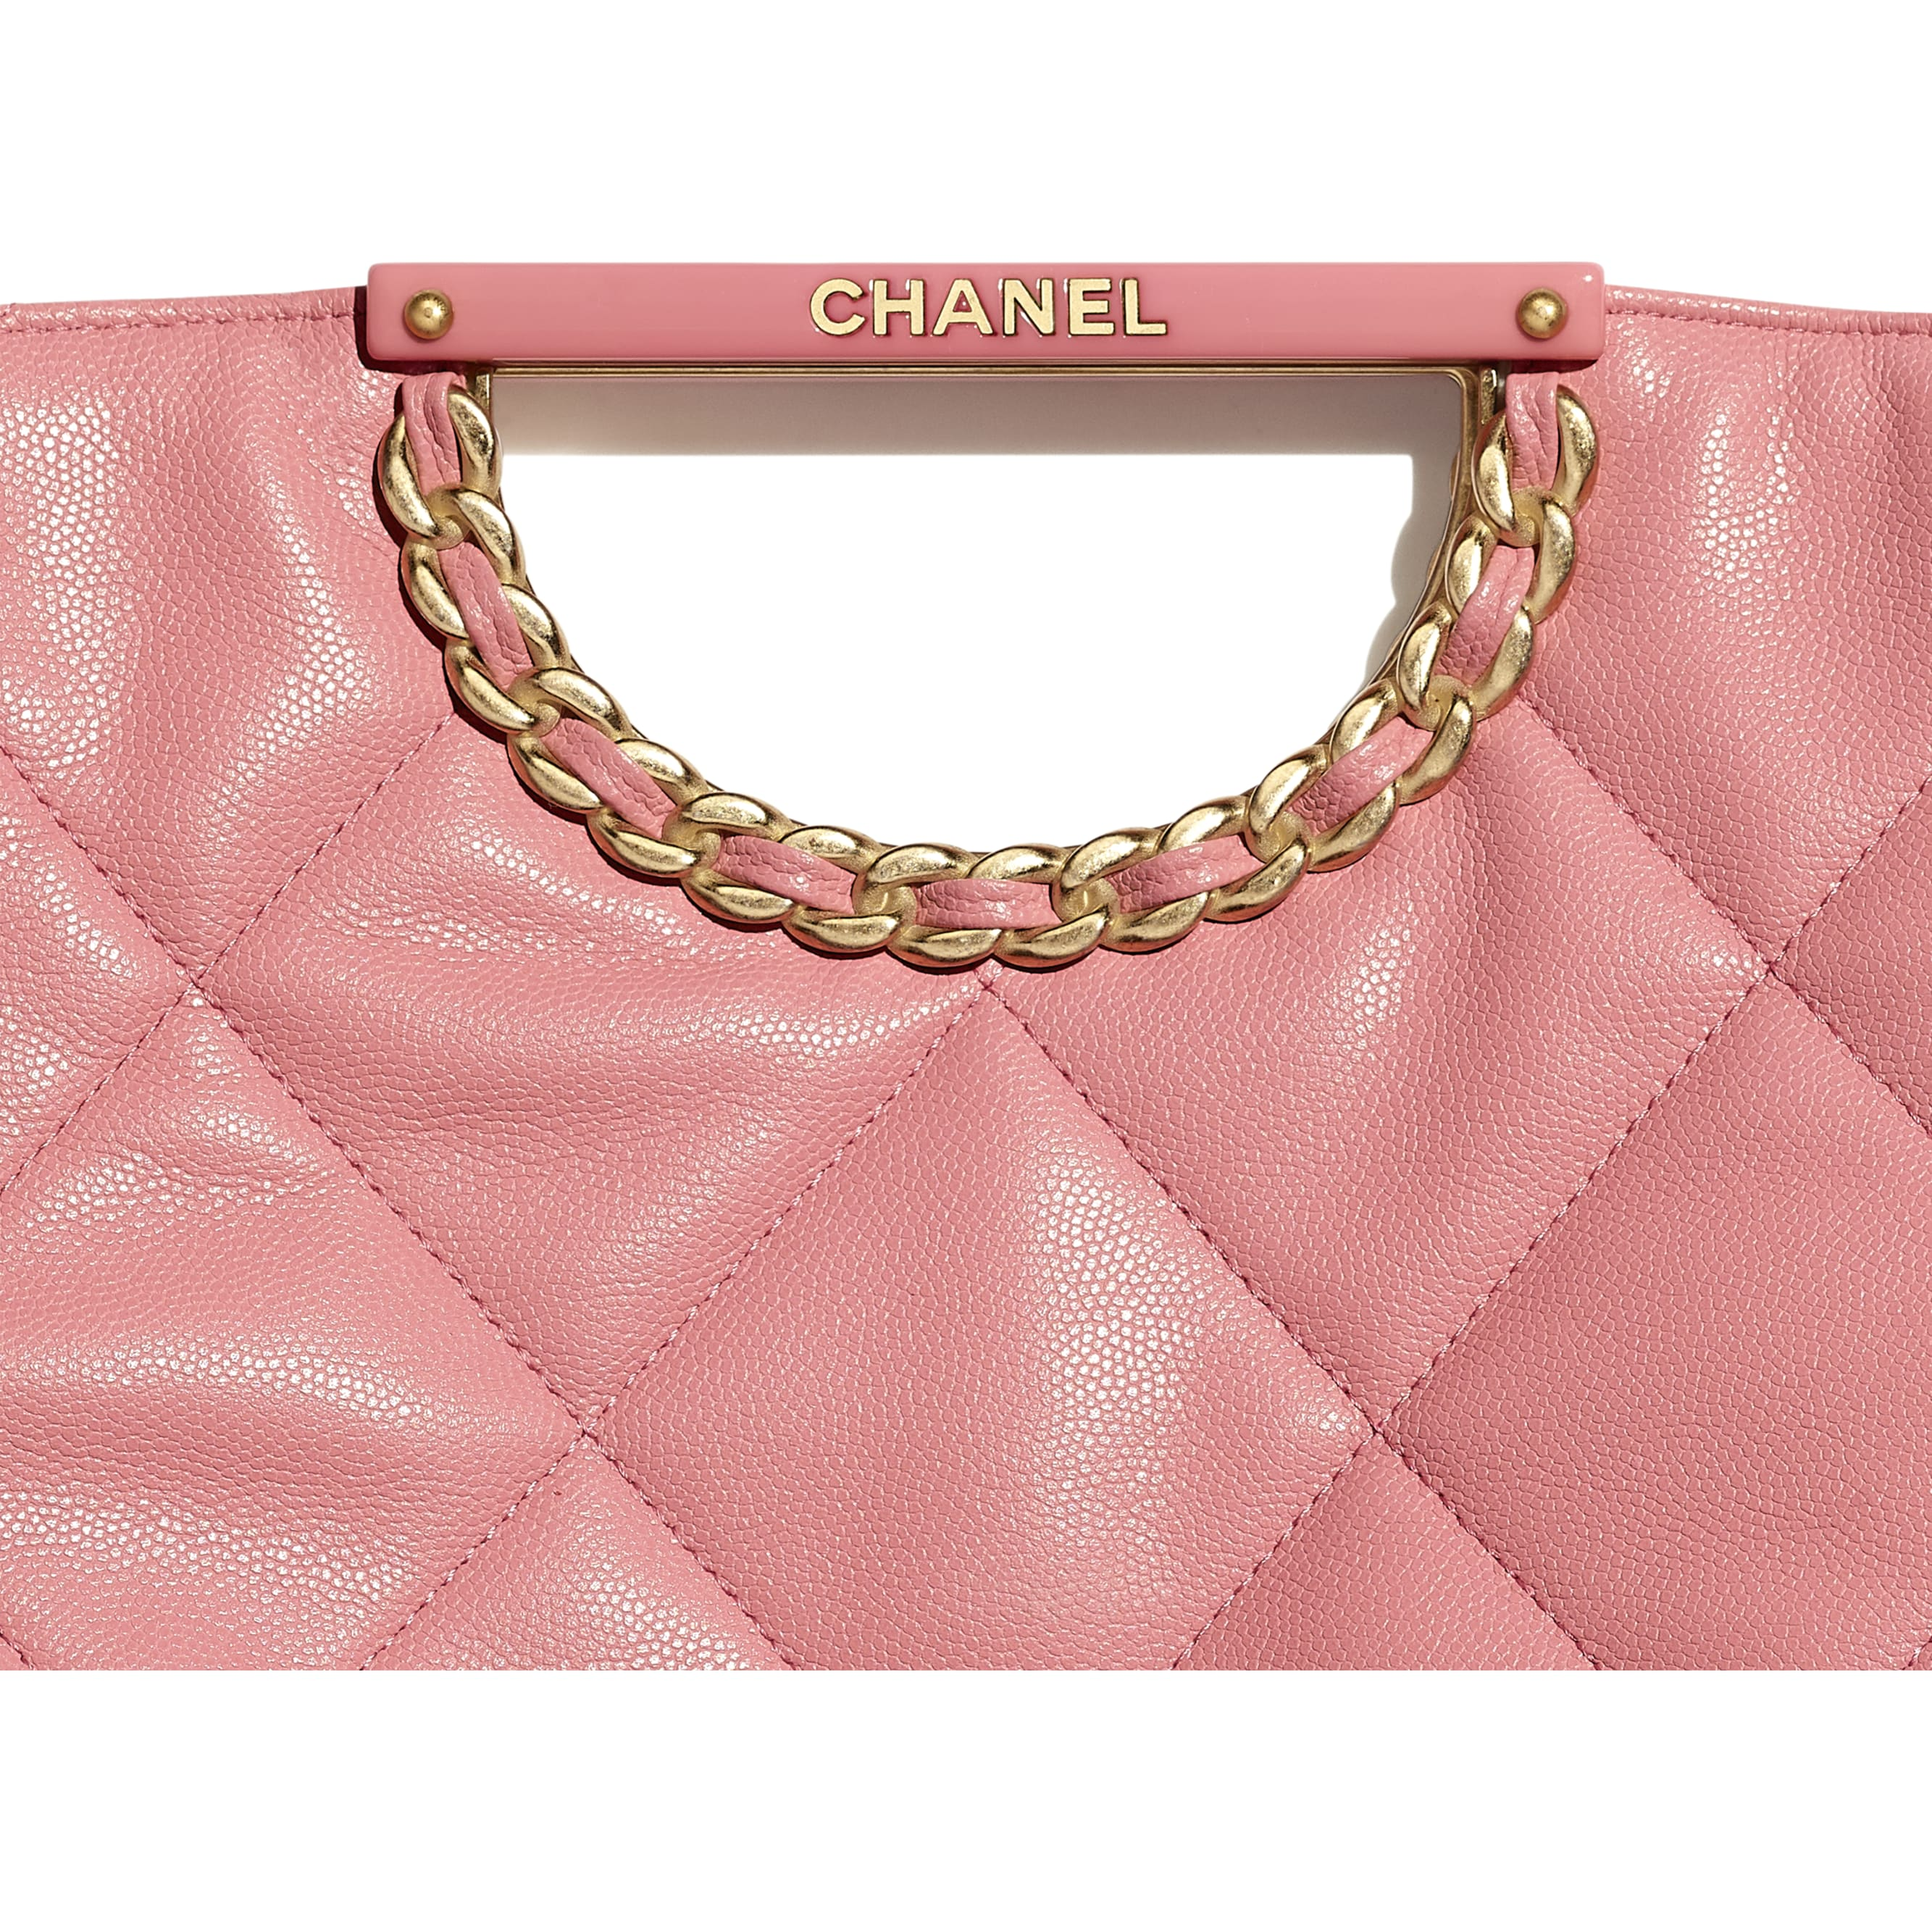 Clutch - Pink - Grained Calfskin & Gold-Tone Metal - CHANEL - Extra view - see standard sized version